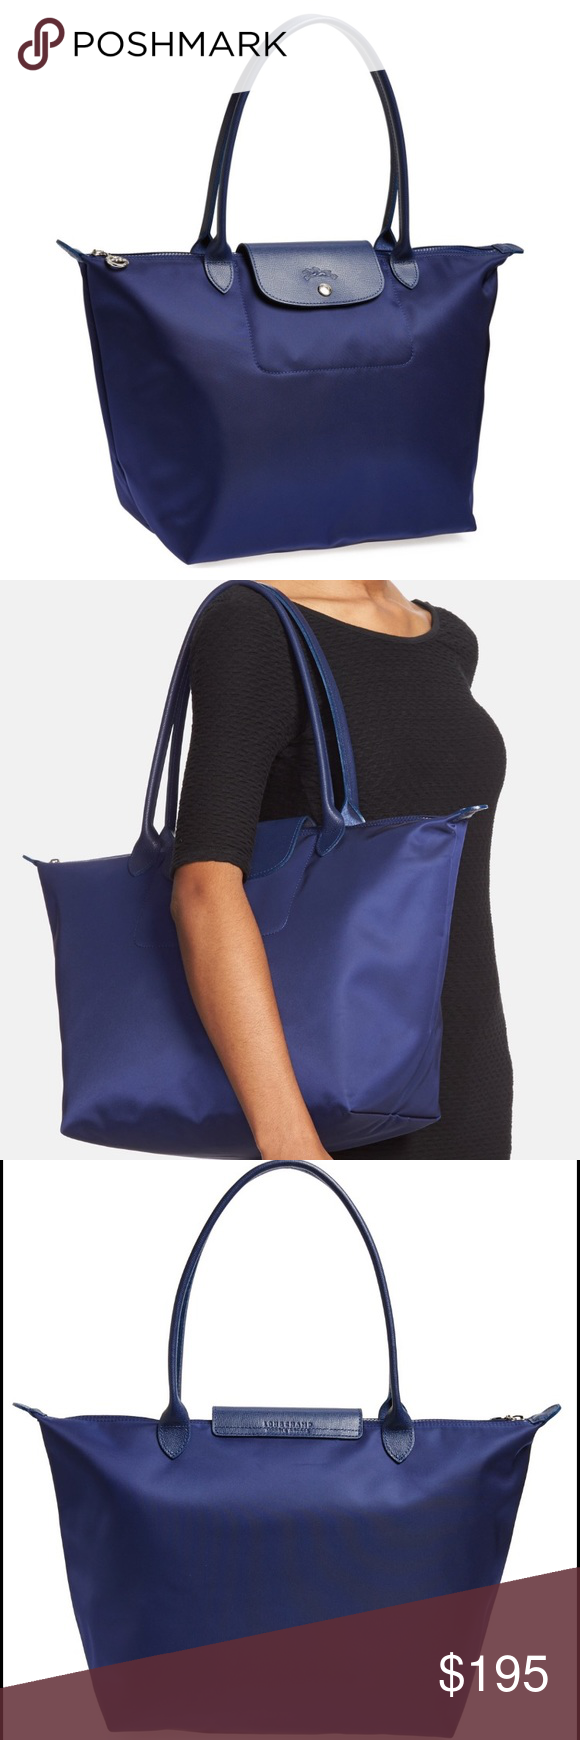 """Longchamp Large Le Pliage Neo' Nylon Tote (new) Brand new with tags color is navy blue. Bought at gilt.com as final sale so no returns or exchanges. Lightly textured leather borders a sleek, durable nylon tote that folds flat when not in use, making it perfect for travel. Top zip with logo-stamped snap-flap tab closure. Interior cell-phone pocket. Water-resistant lining. Nylon with leather trim. By Longchamp; imported. Handbags. Size info: 12 ¼""""W x 11 ¾""""H x 7 ½""""D. (Interior capacity: large.)…"""